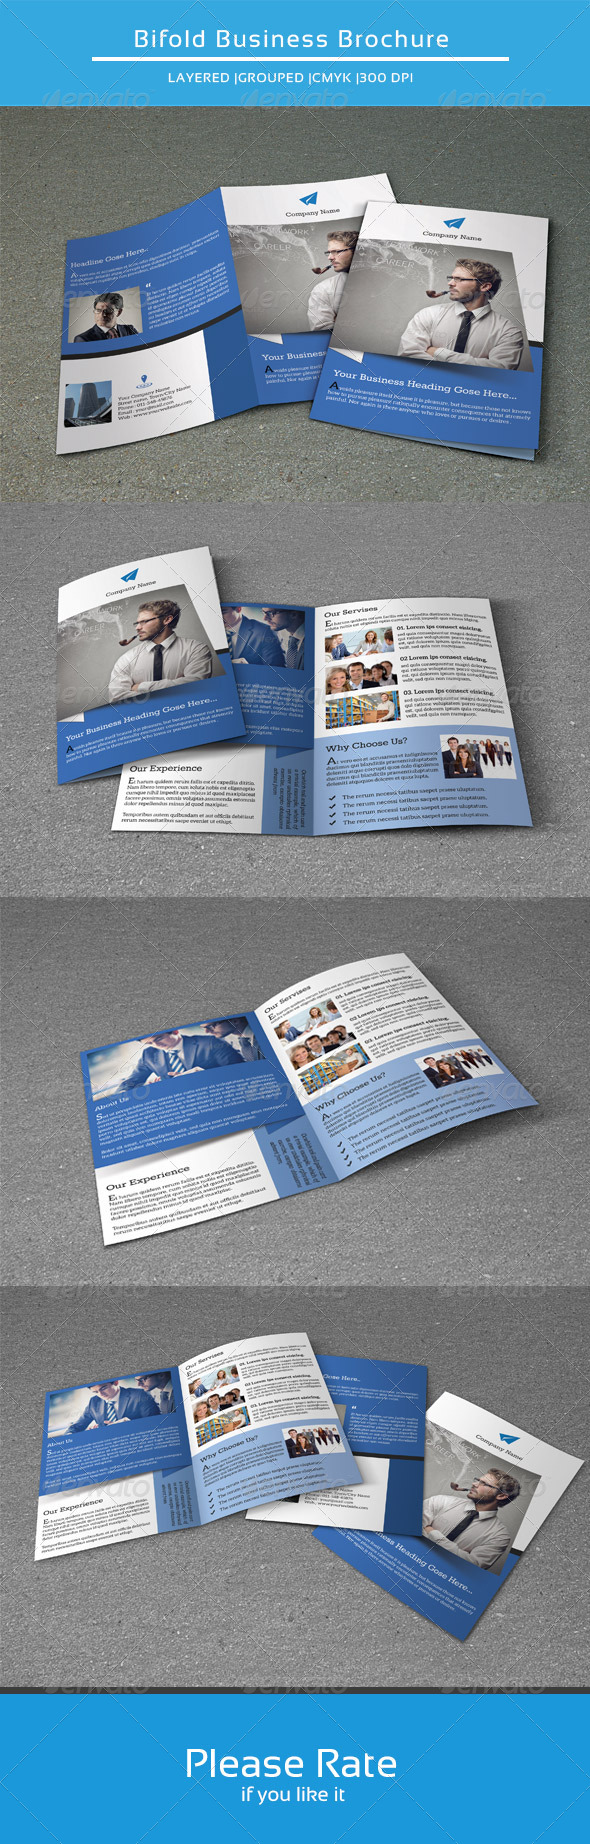 GraphicRiver Bifold Business Brochure-V110 8565486